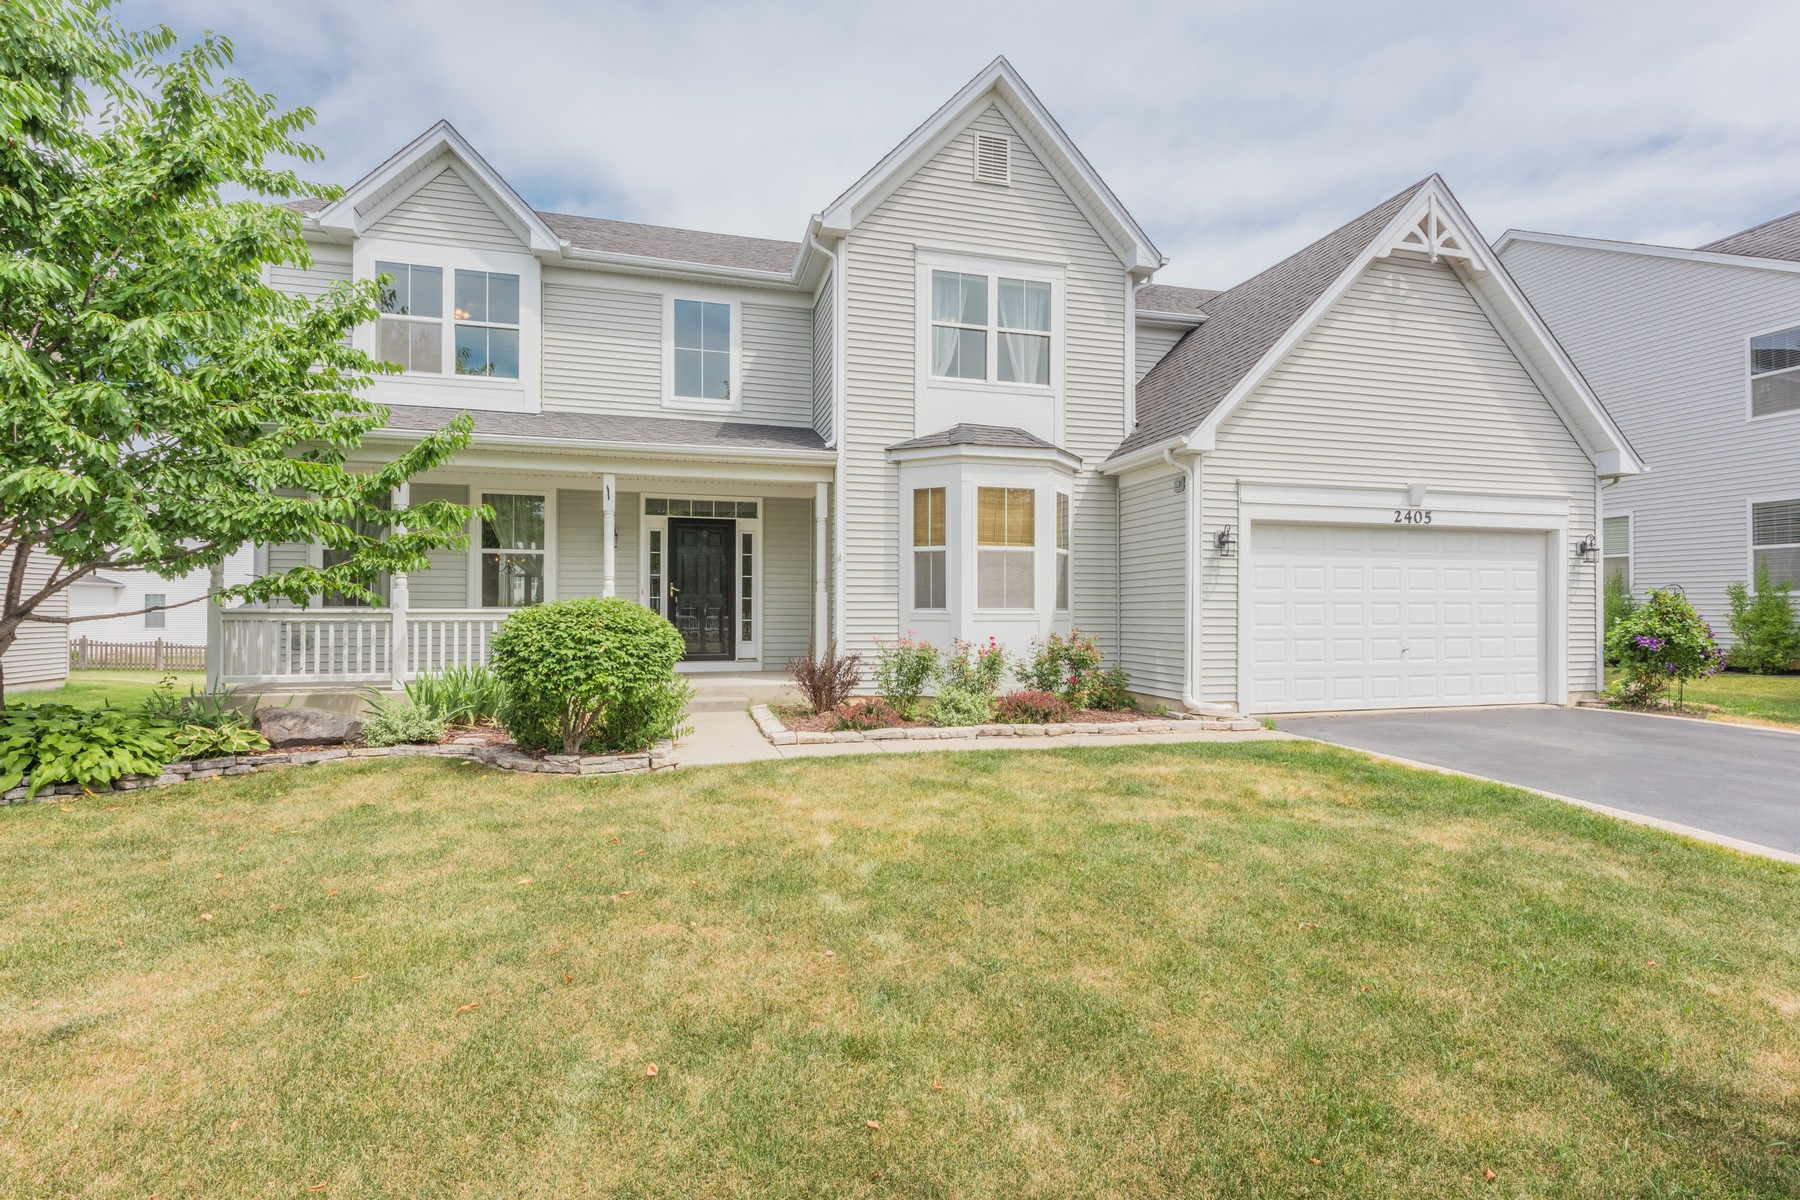 Maison unifamiliale pour l Vente à Freshly Updated Home 2405 Trailside Lane Wauconda, Illinois, 60084 États-Unis